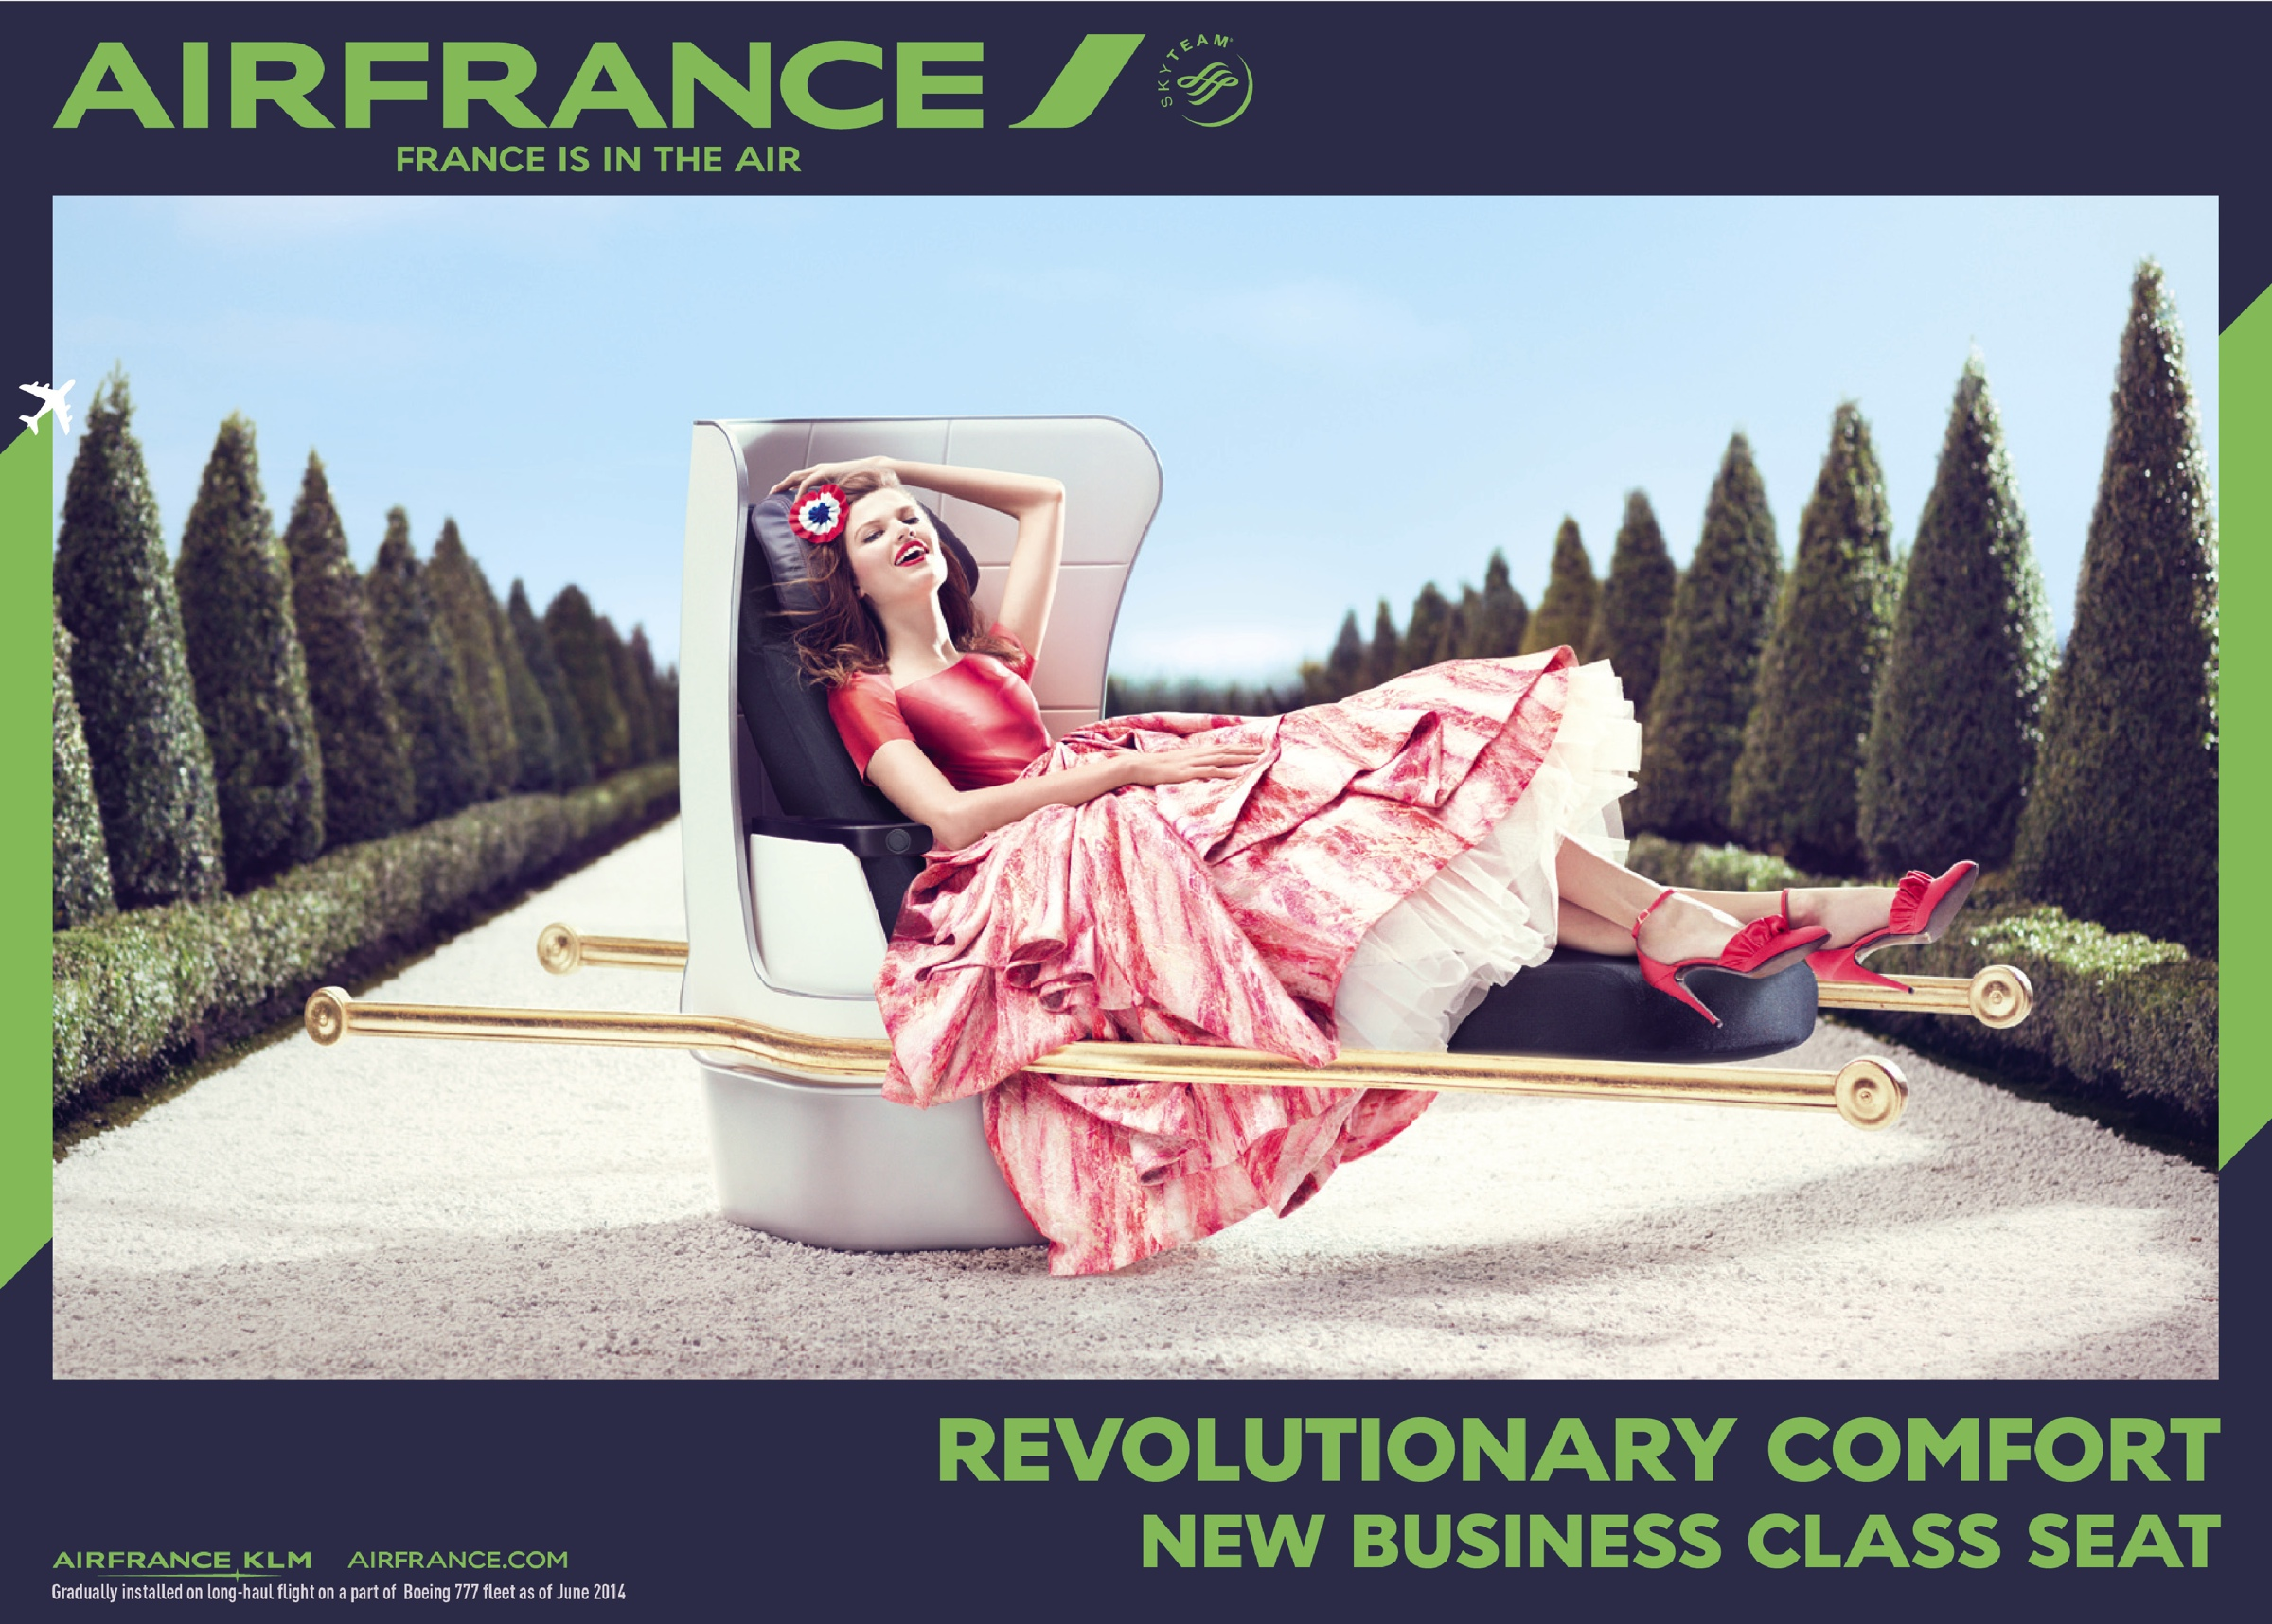 Air-France-Vintage-Campaign-Business-Class